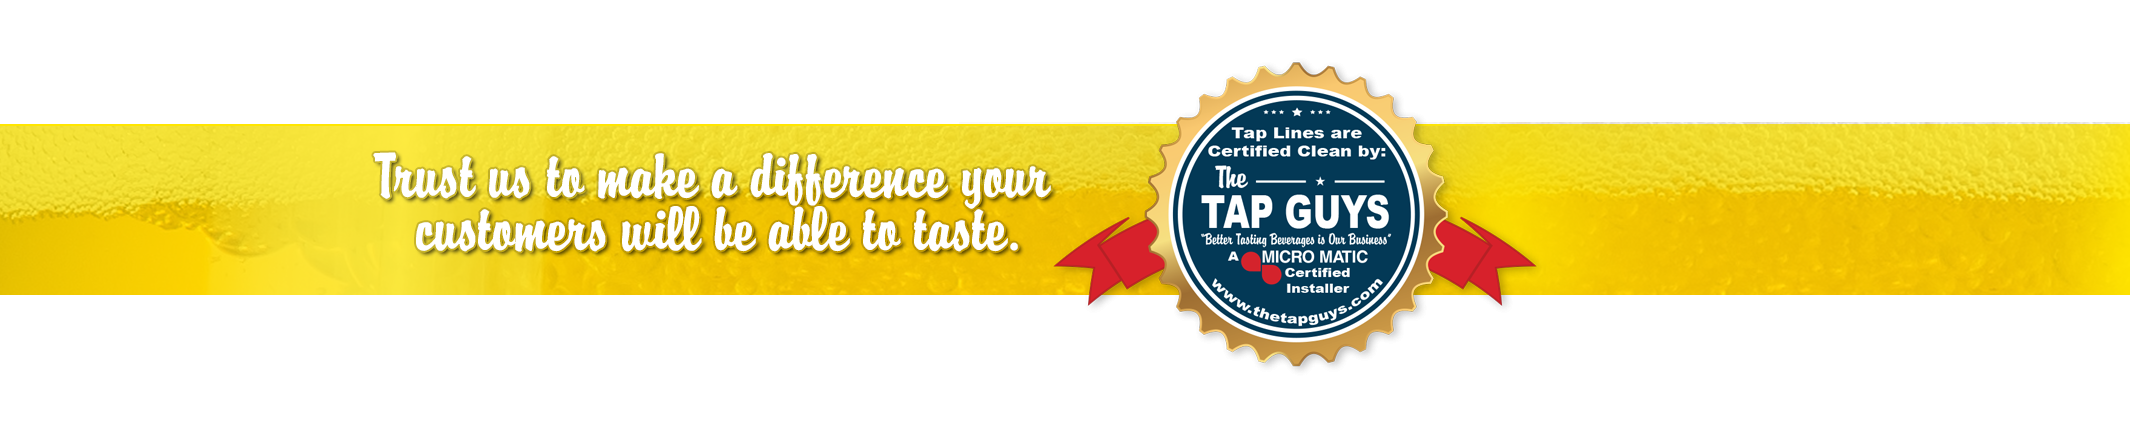 The Tap Guys_Services_Certified Ribbon_update_1